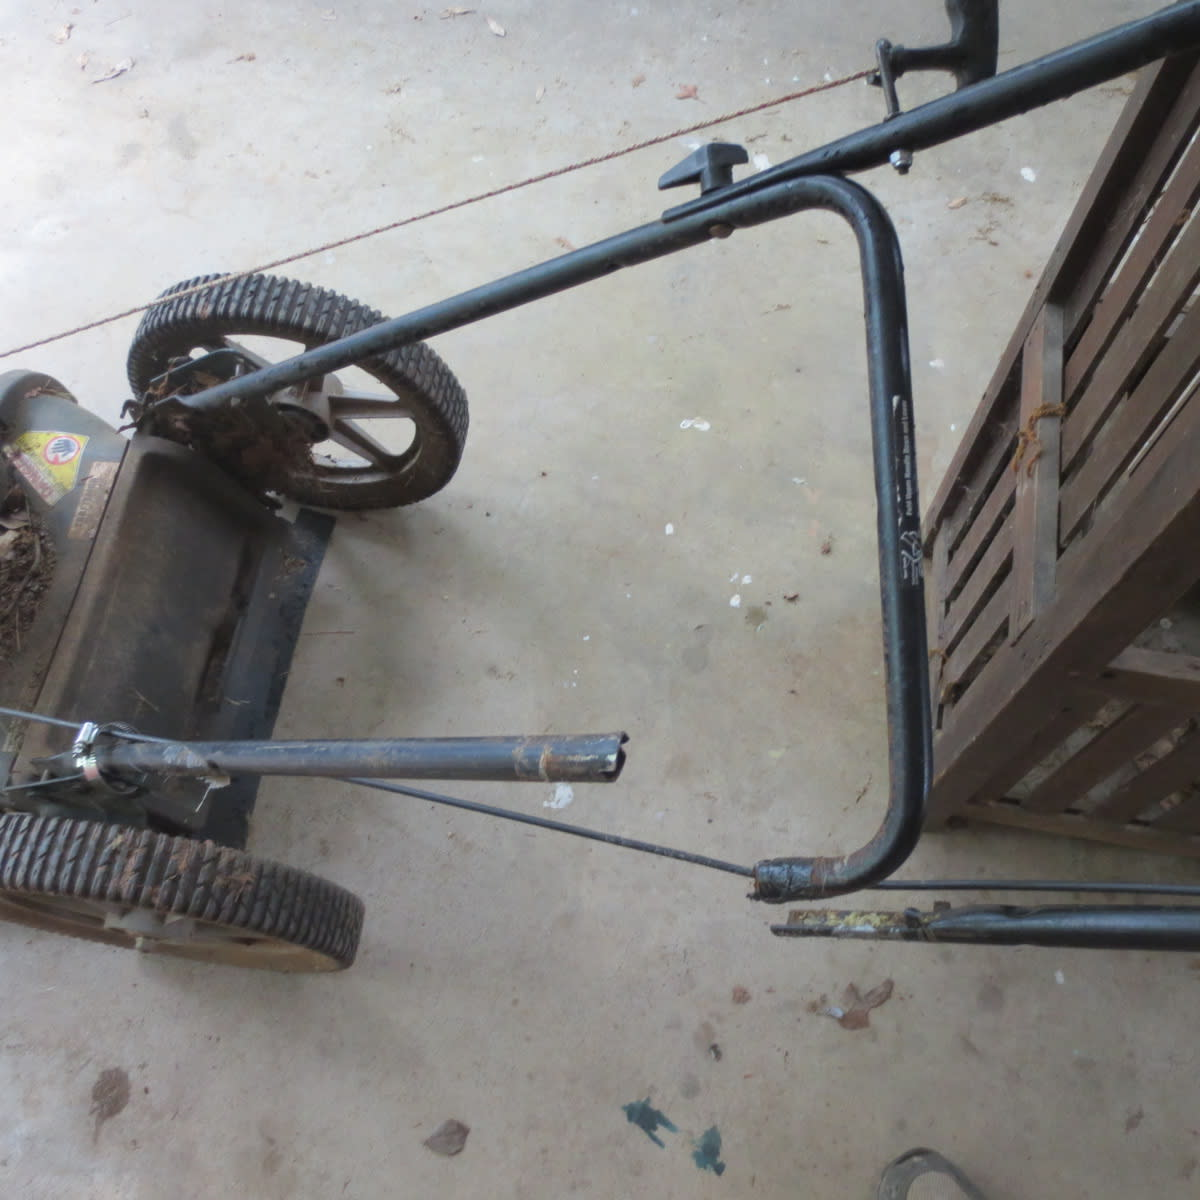 How to Fix a Lawn Mower Handle Yourself